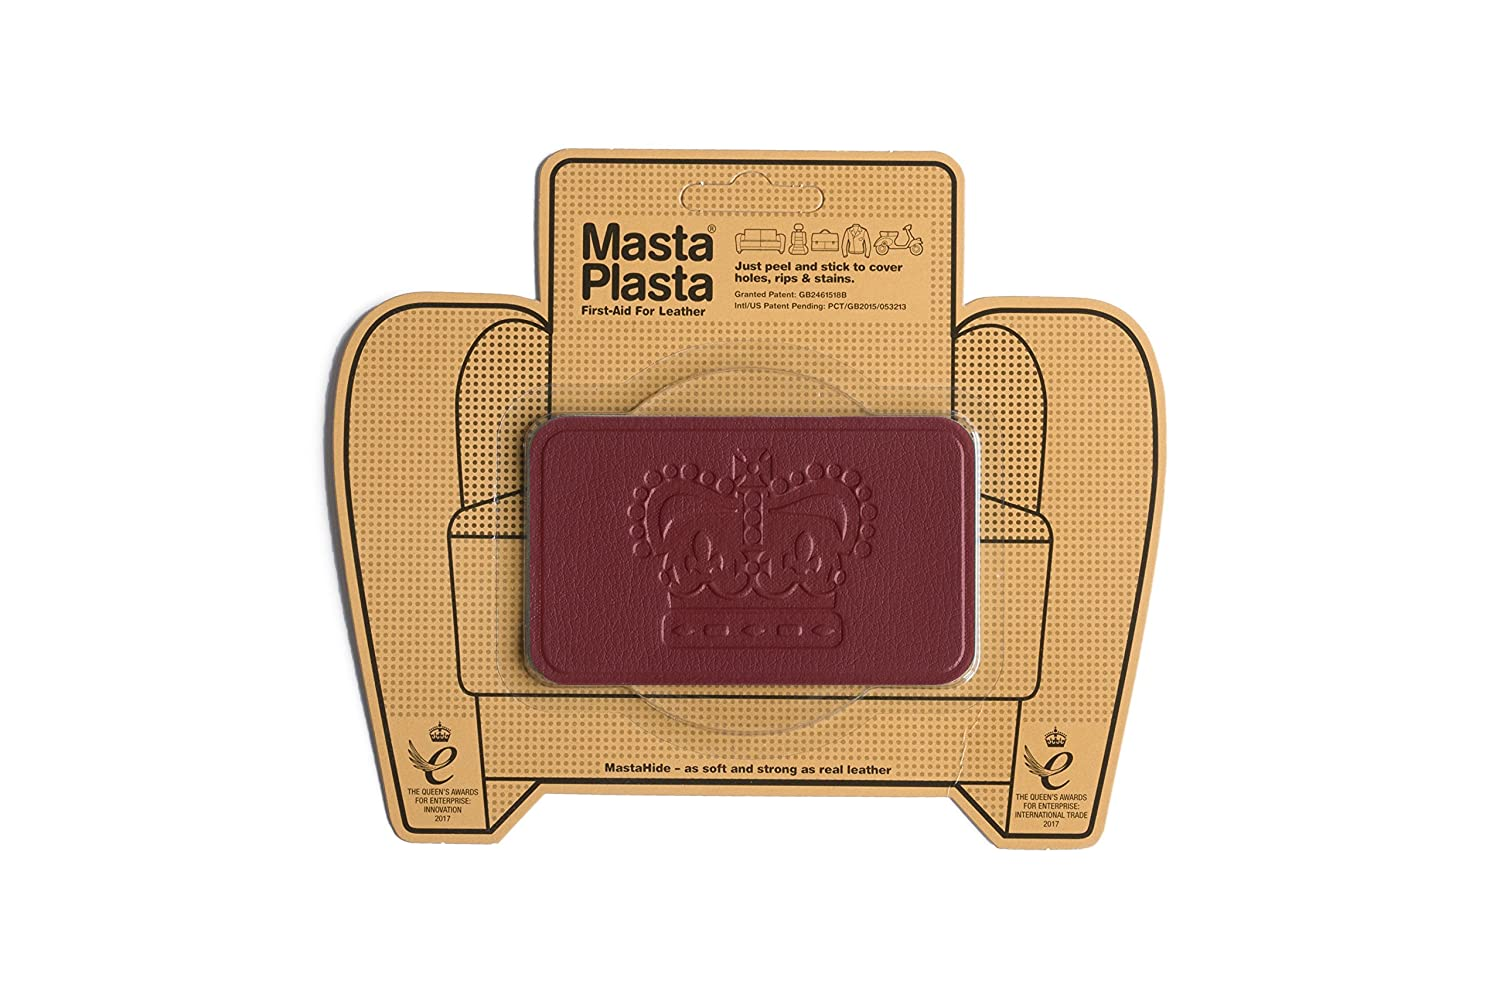 MastaPlasta Self-Adhesive Patch for Leather and Vinyl Repair, Crown, Ivory - Multiple Colors Available Mastaplasta Limited IVORYCROWN4X2.4USA